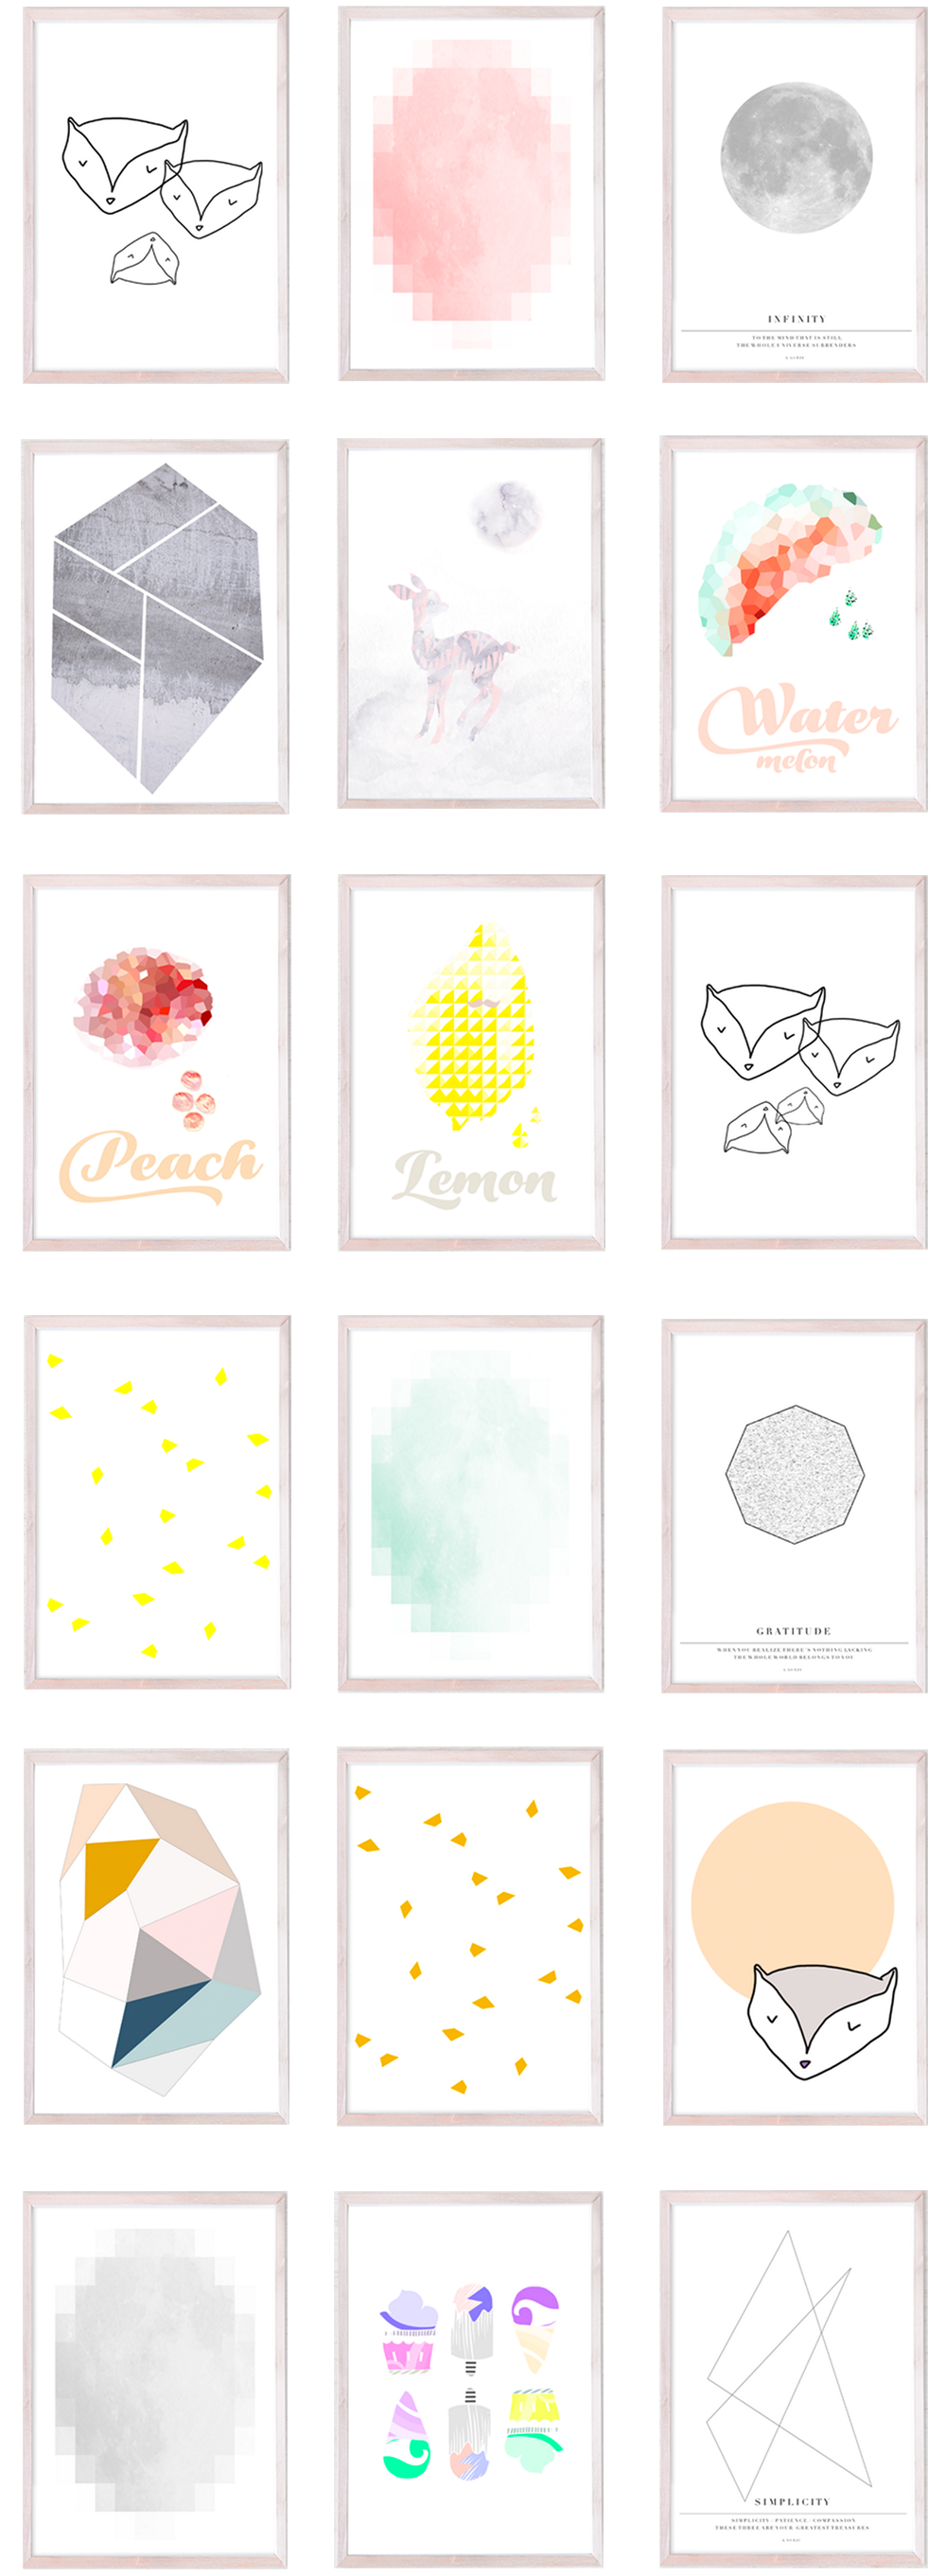 kaunis decoration prints